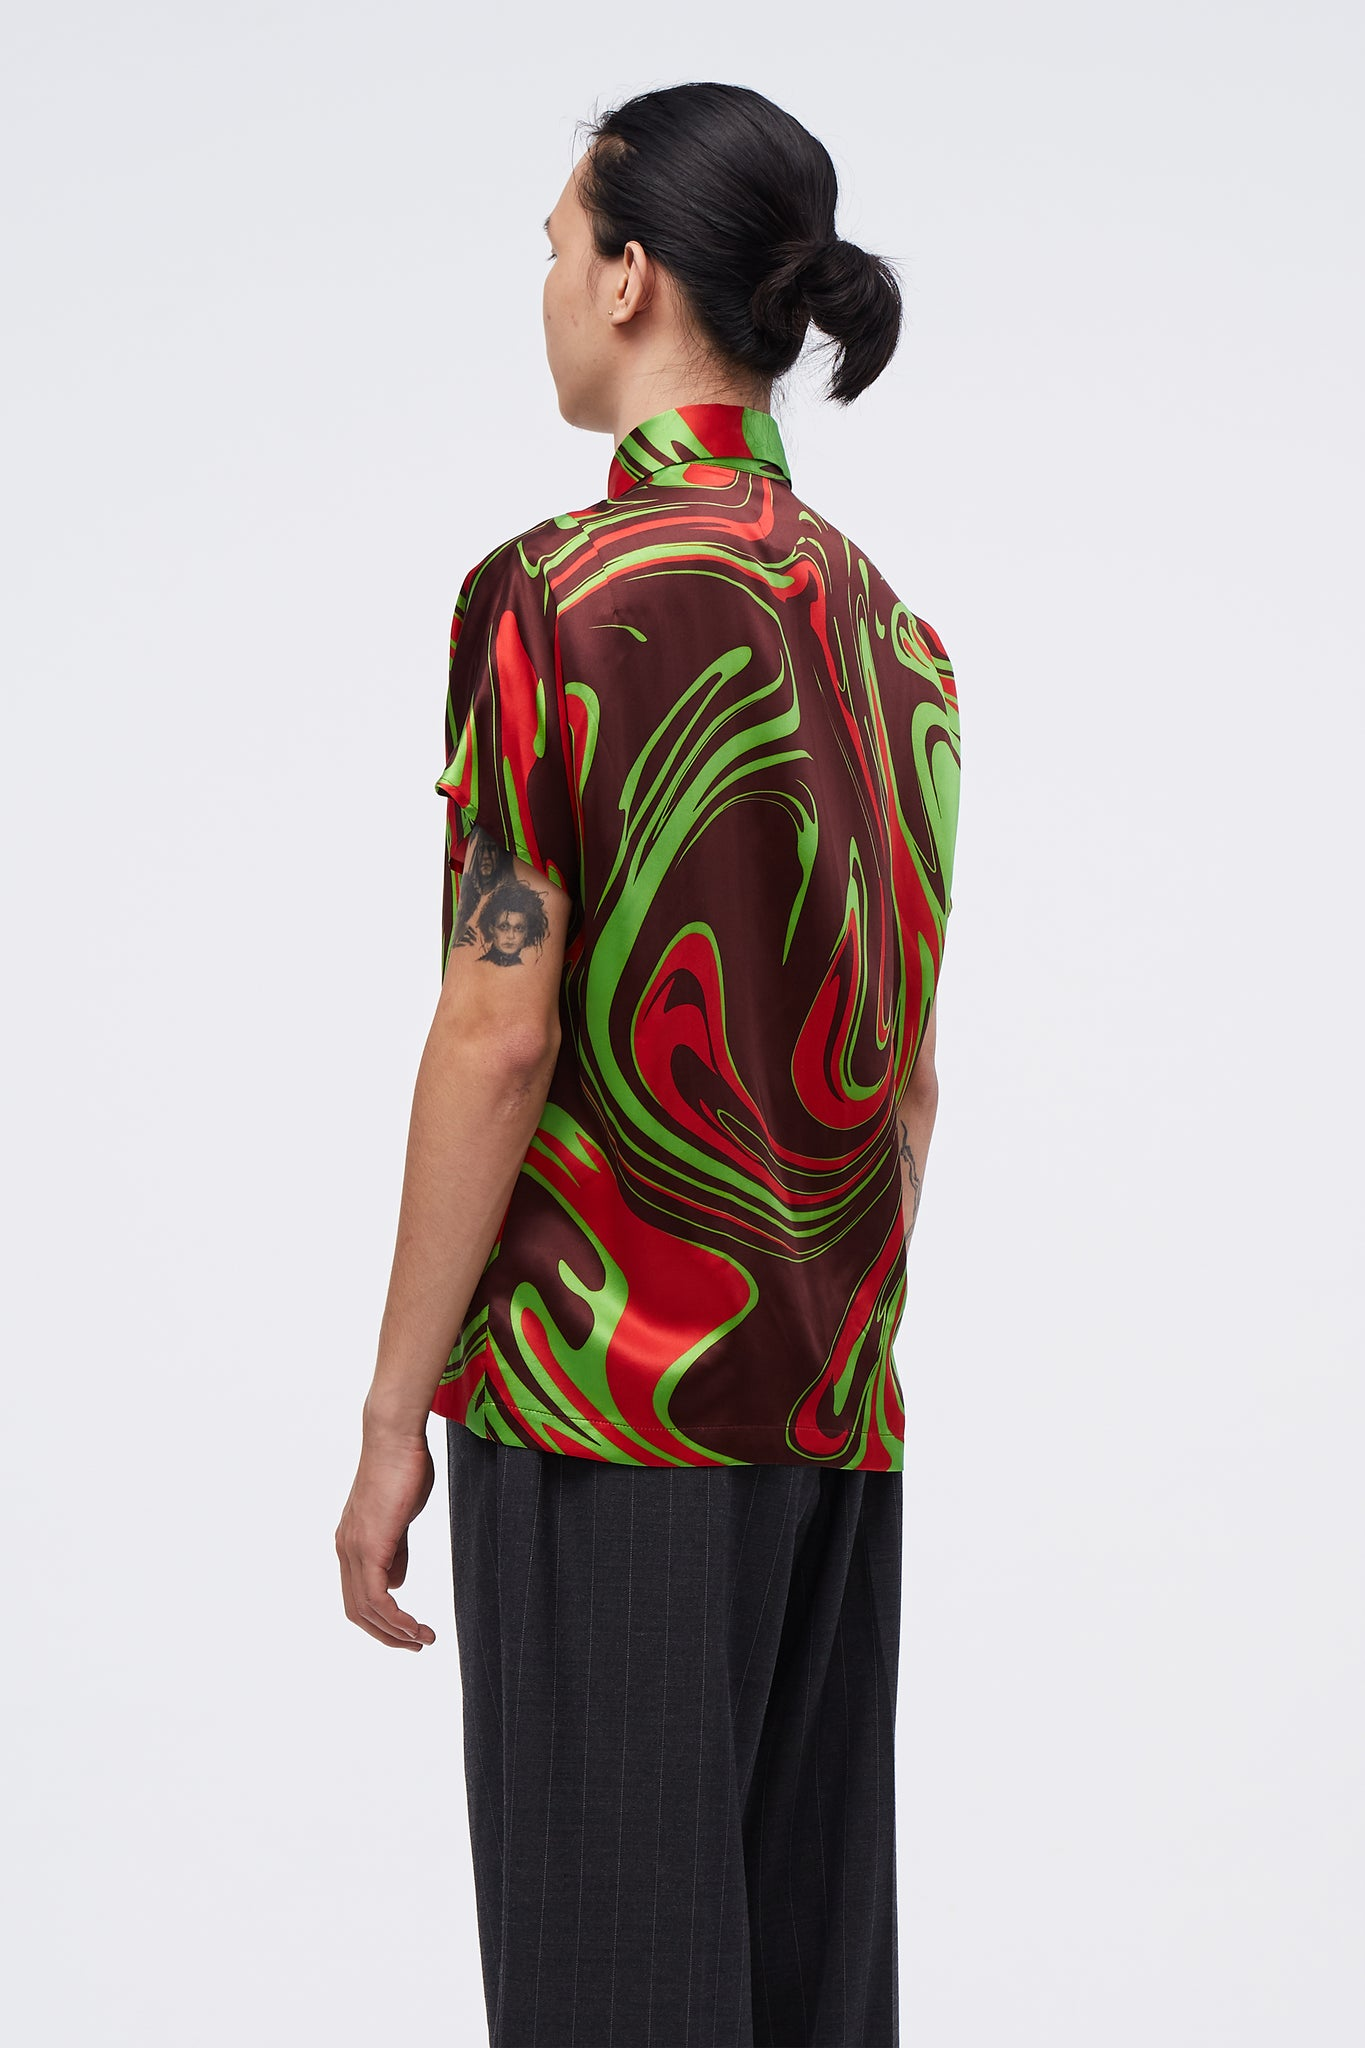 Aniki Muscle Sleeve Shirt Looney Tunes Swirl Pattern